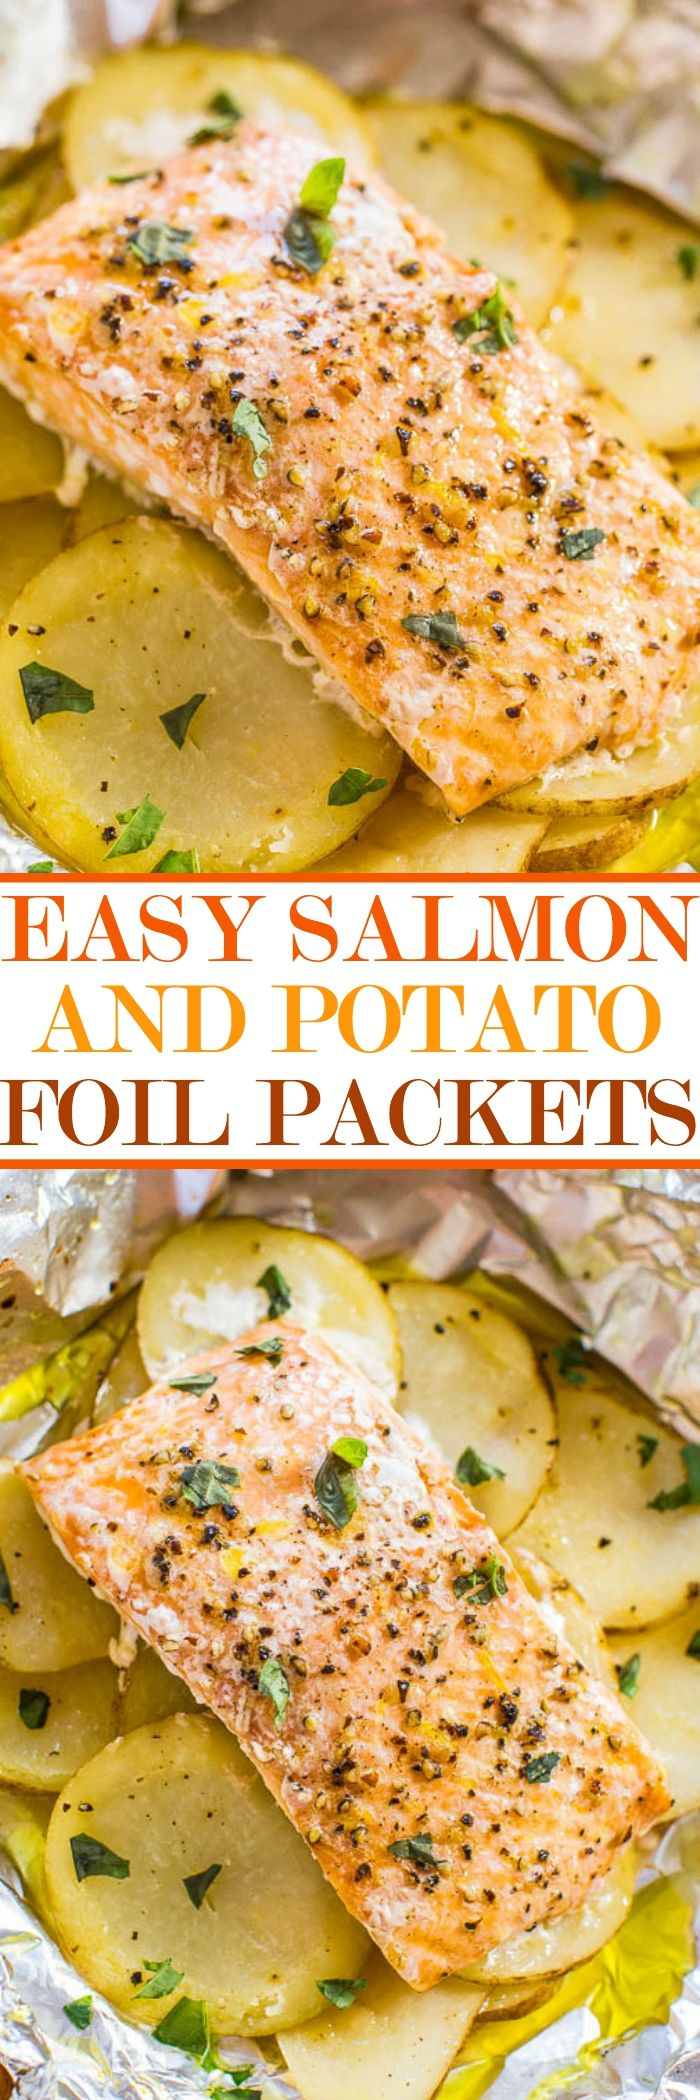 Easy Salmon and Potato Foil Packets - Juicy, moist salmon that's loaded with flavor! Ready in 30 minutes, zero cleanup, and a foolproof way to cook salmon and look like a gourmet cook!! (Good! Remember to really thinly slice potatoes)